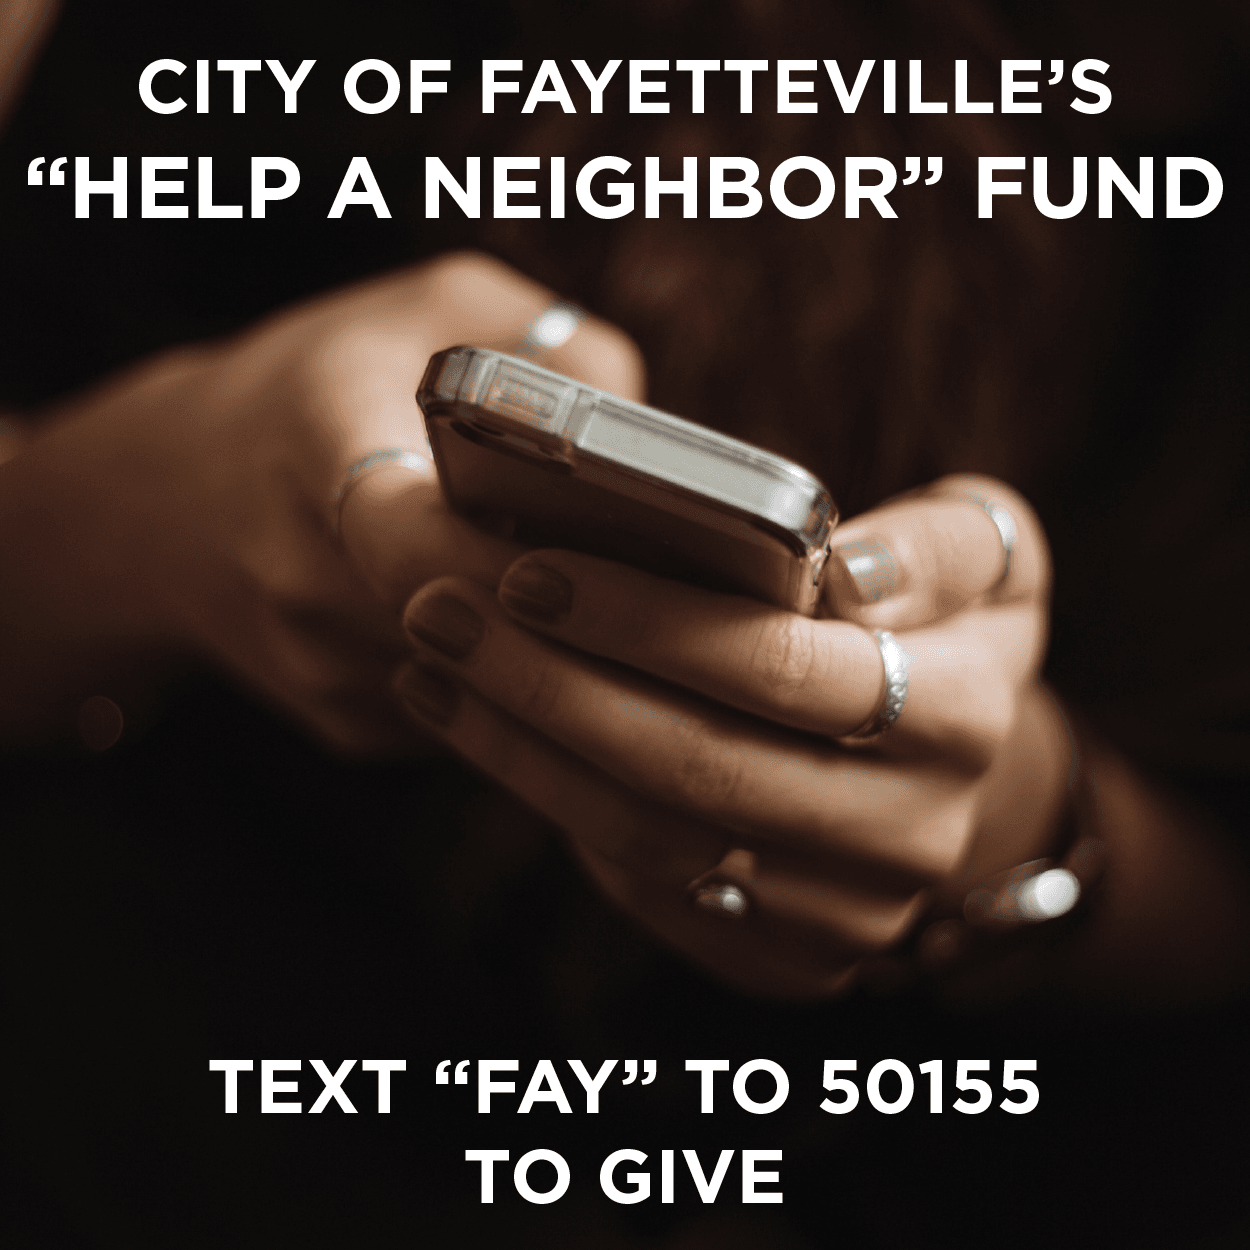 City of Fayetteville &#34Help a Neighbor&#34 Fund: text &#34FAY&#34 to 50155 to donate.